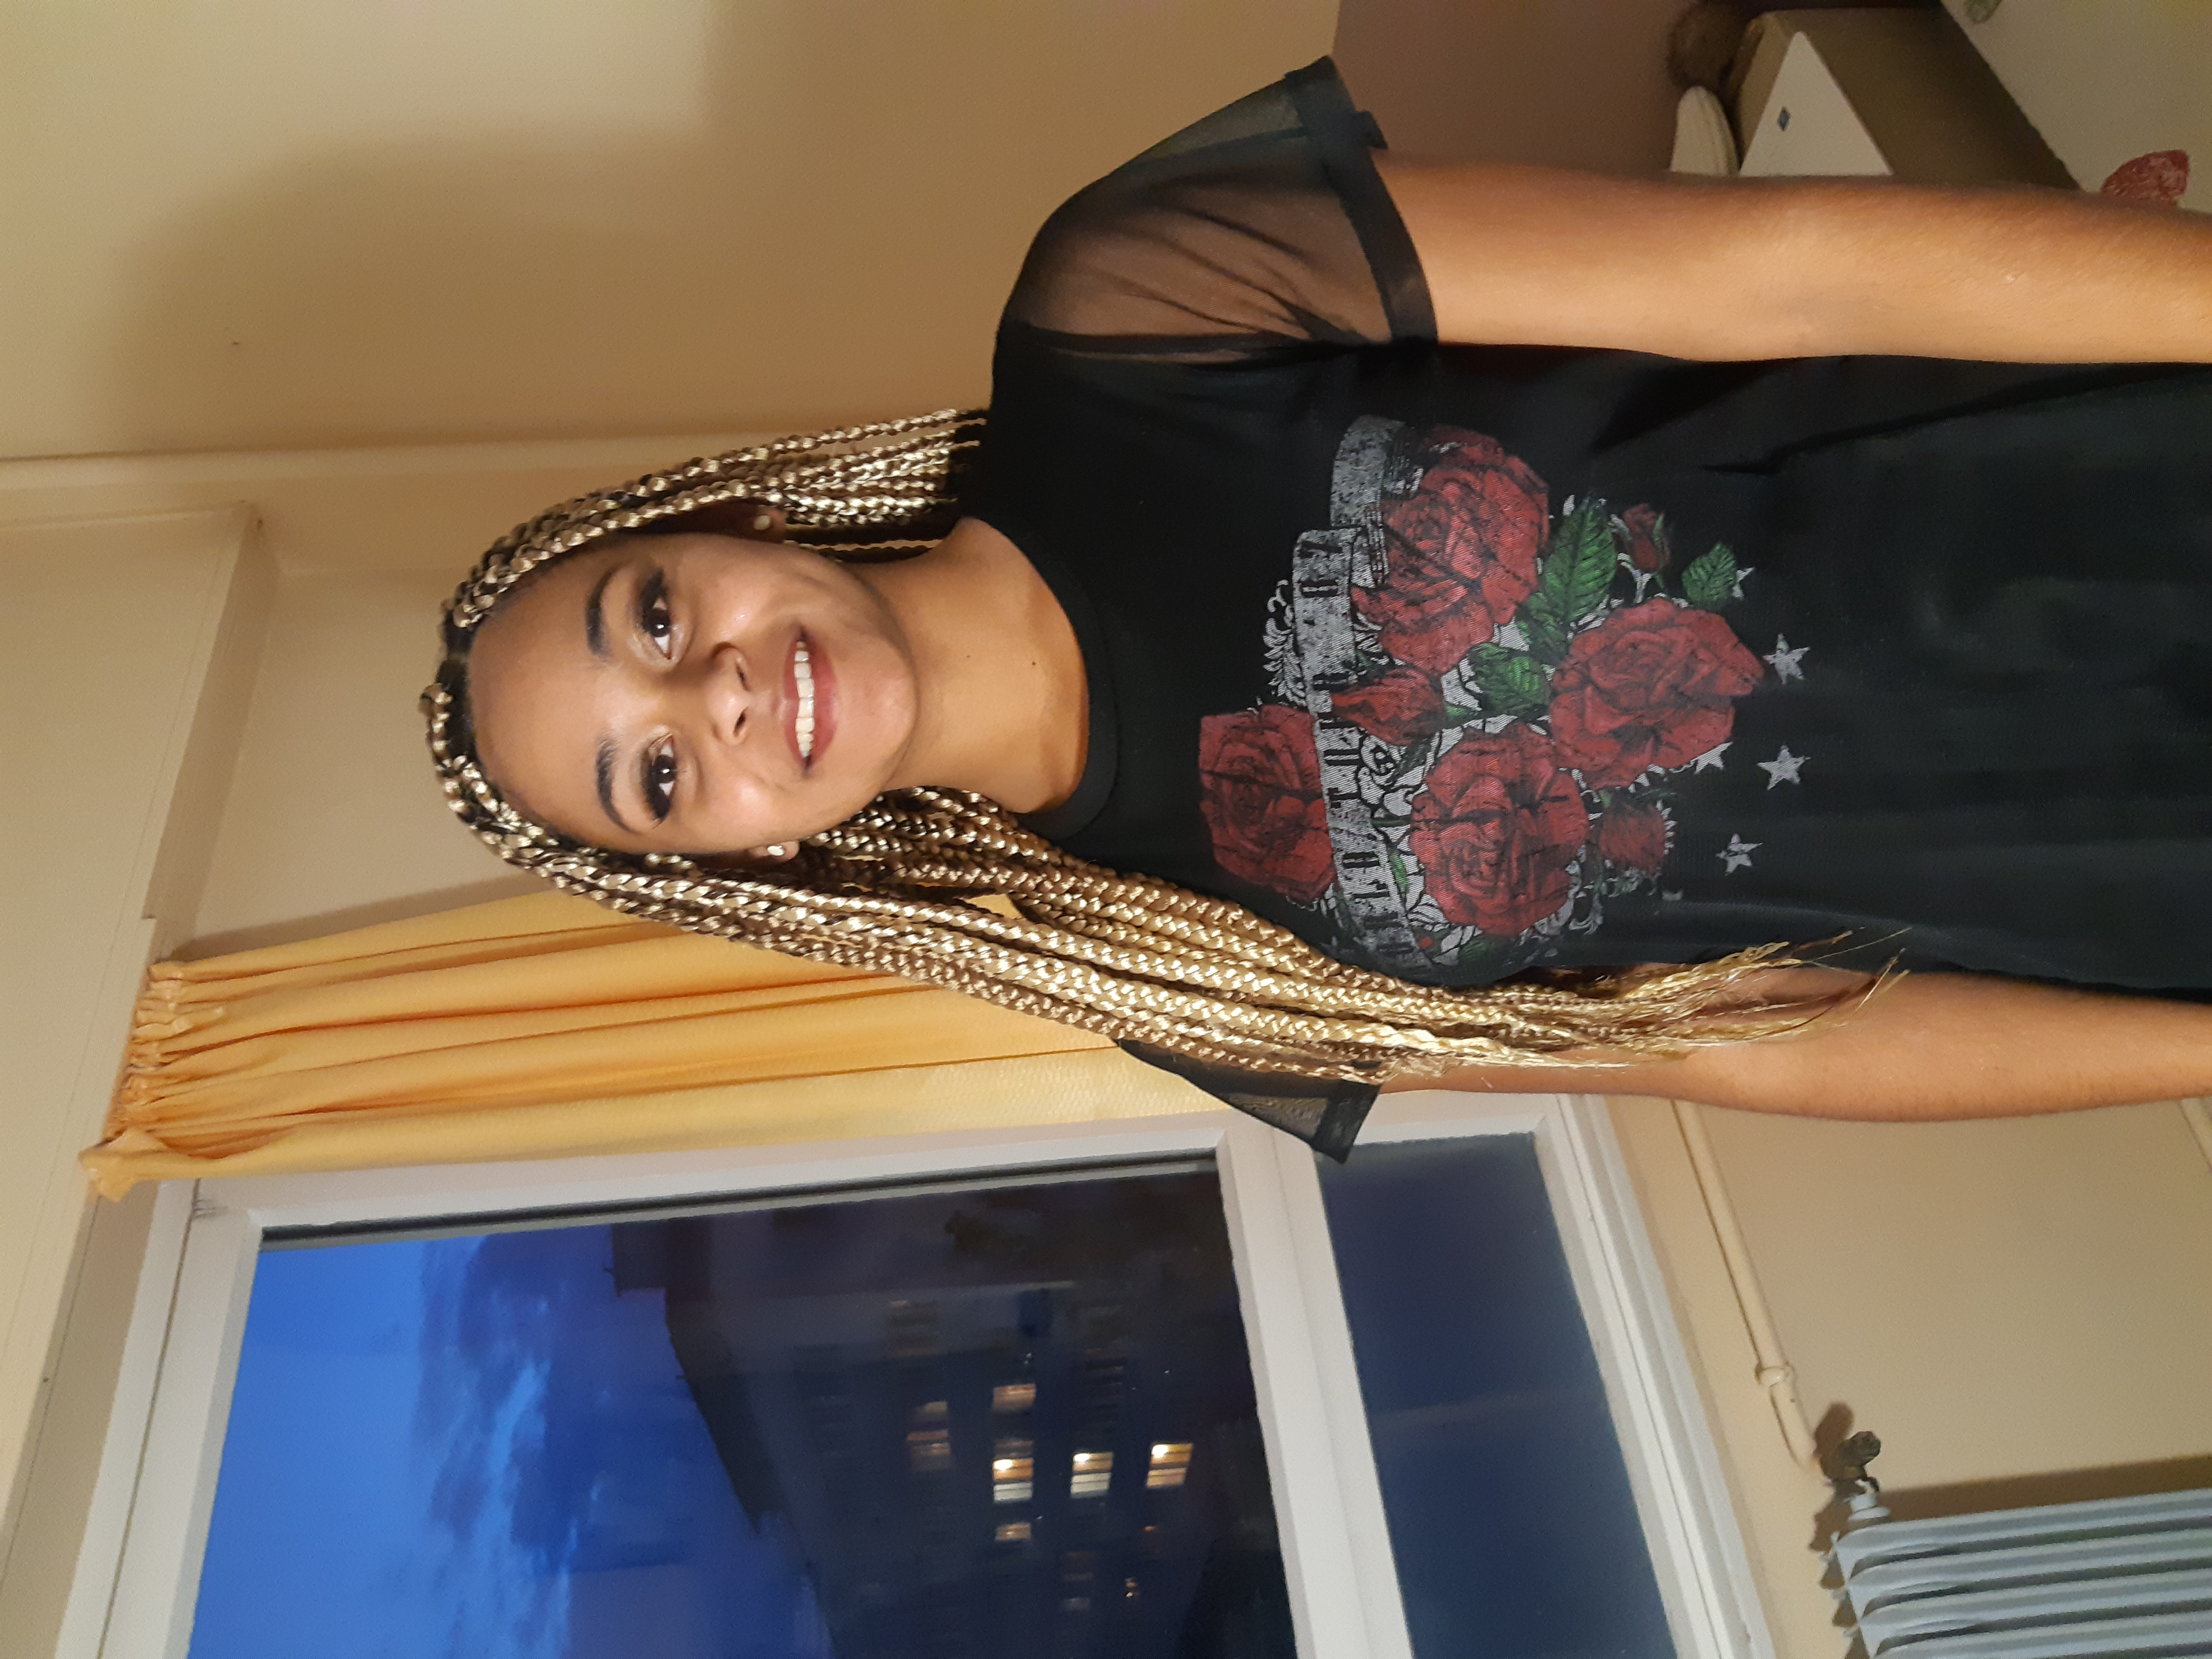 salon de coiffure afro tresse tresses box braids crochet braids vanilles tissages paris 75 77 78 91 92 93 94 95 RUJHETKR